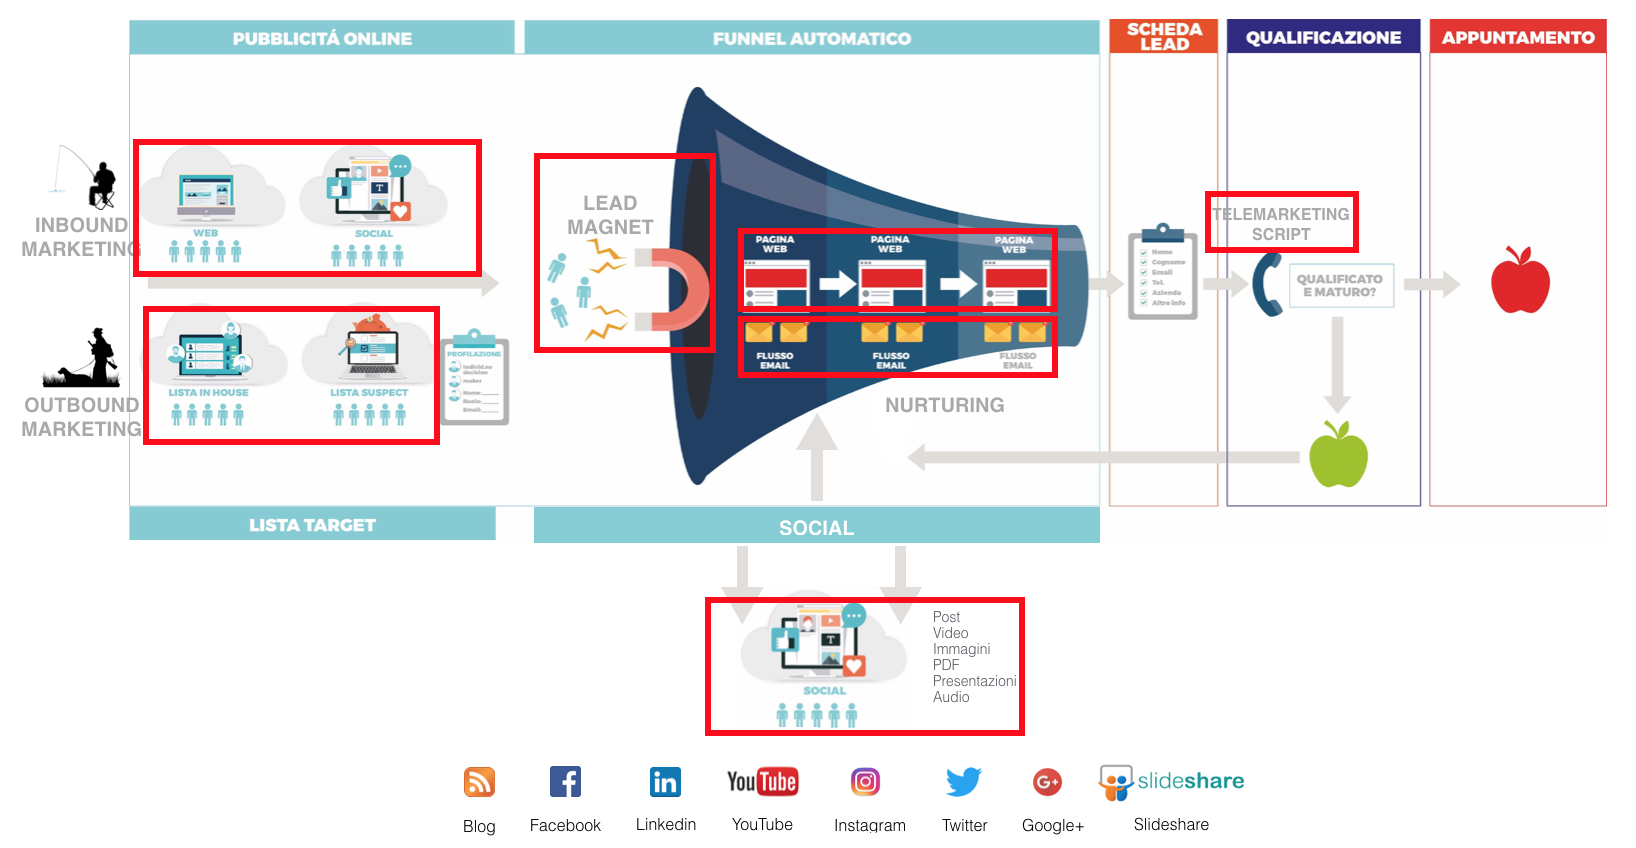 content marketing funnel architecture - lead generation farm